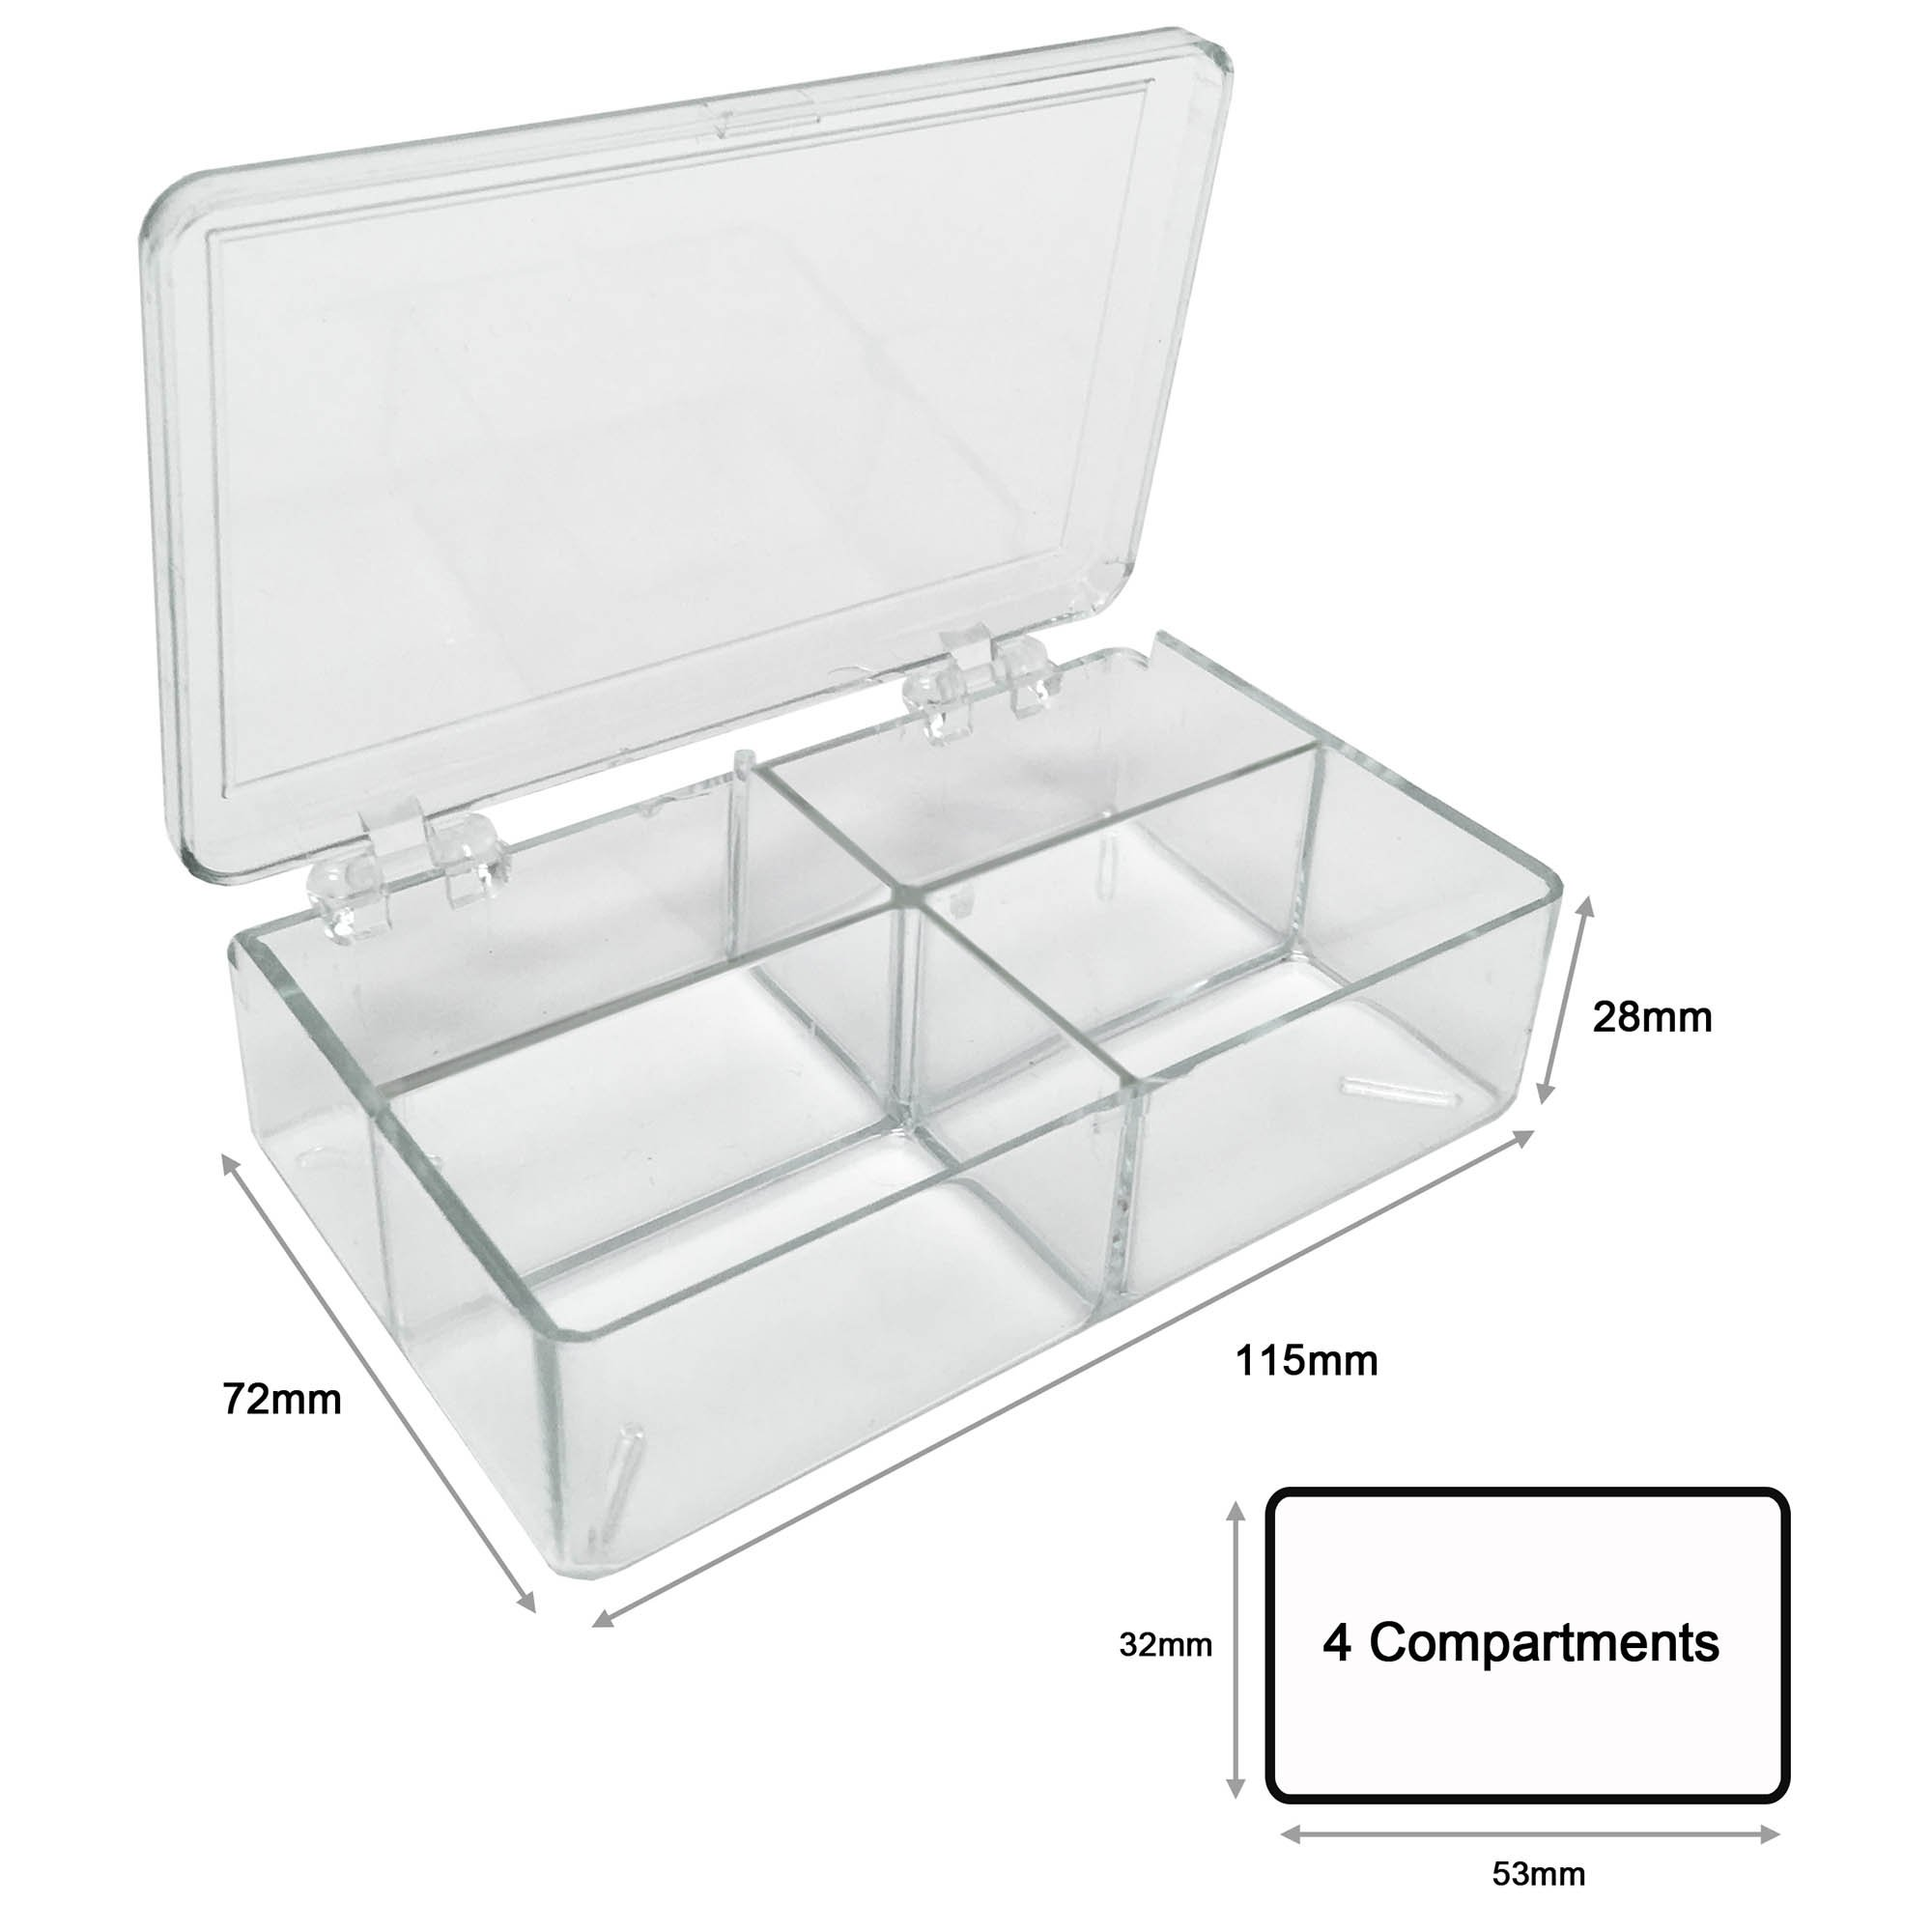 MultiBox Clear Western Blot Box - 4 Compartments 32 x 53 x 28mm Each (Pack of 6)